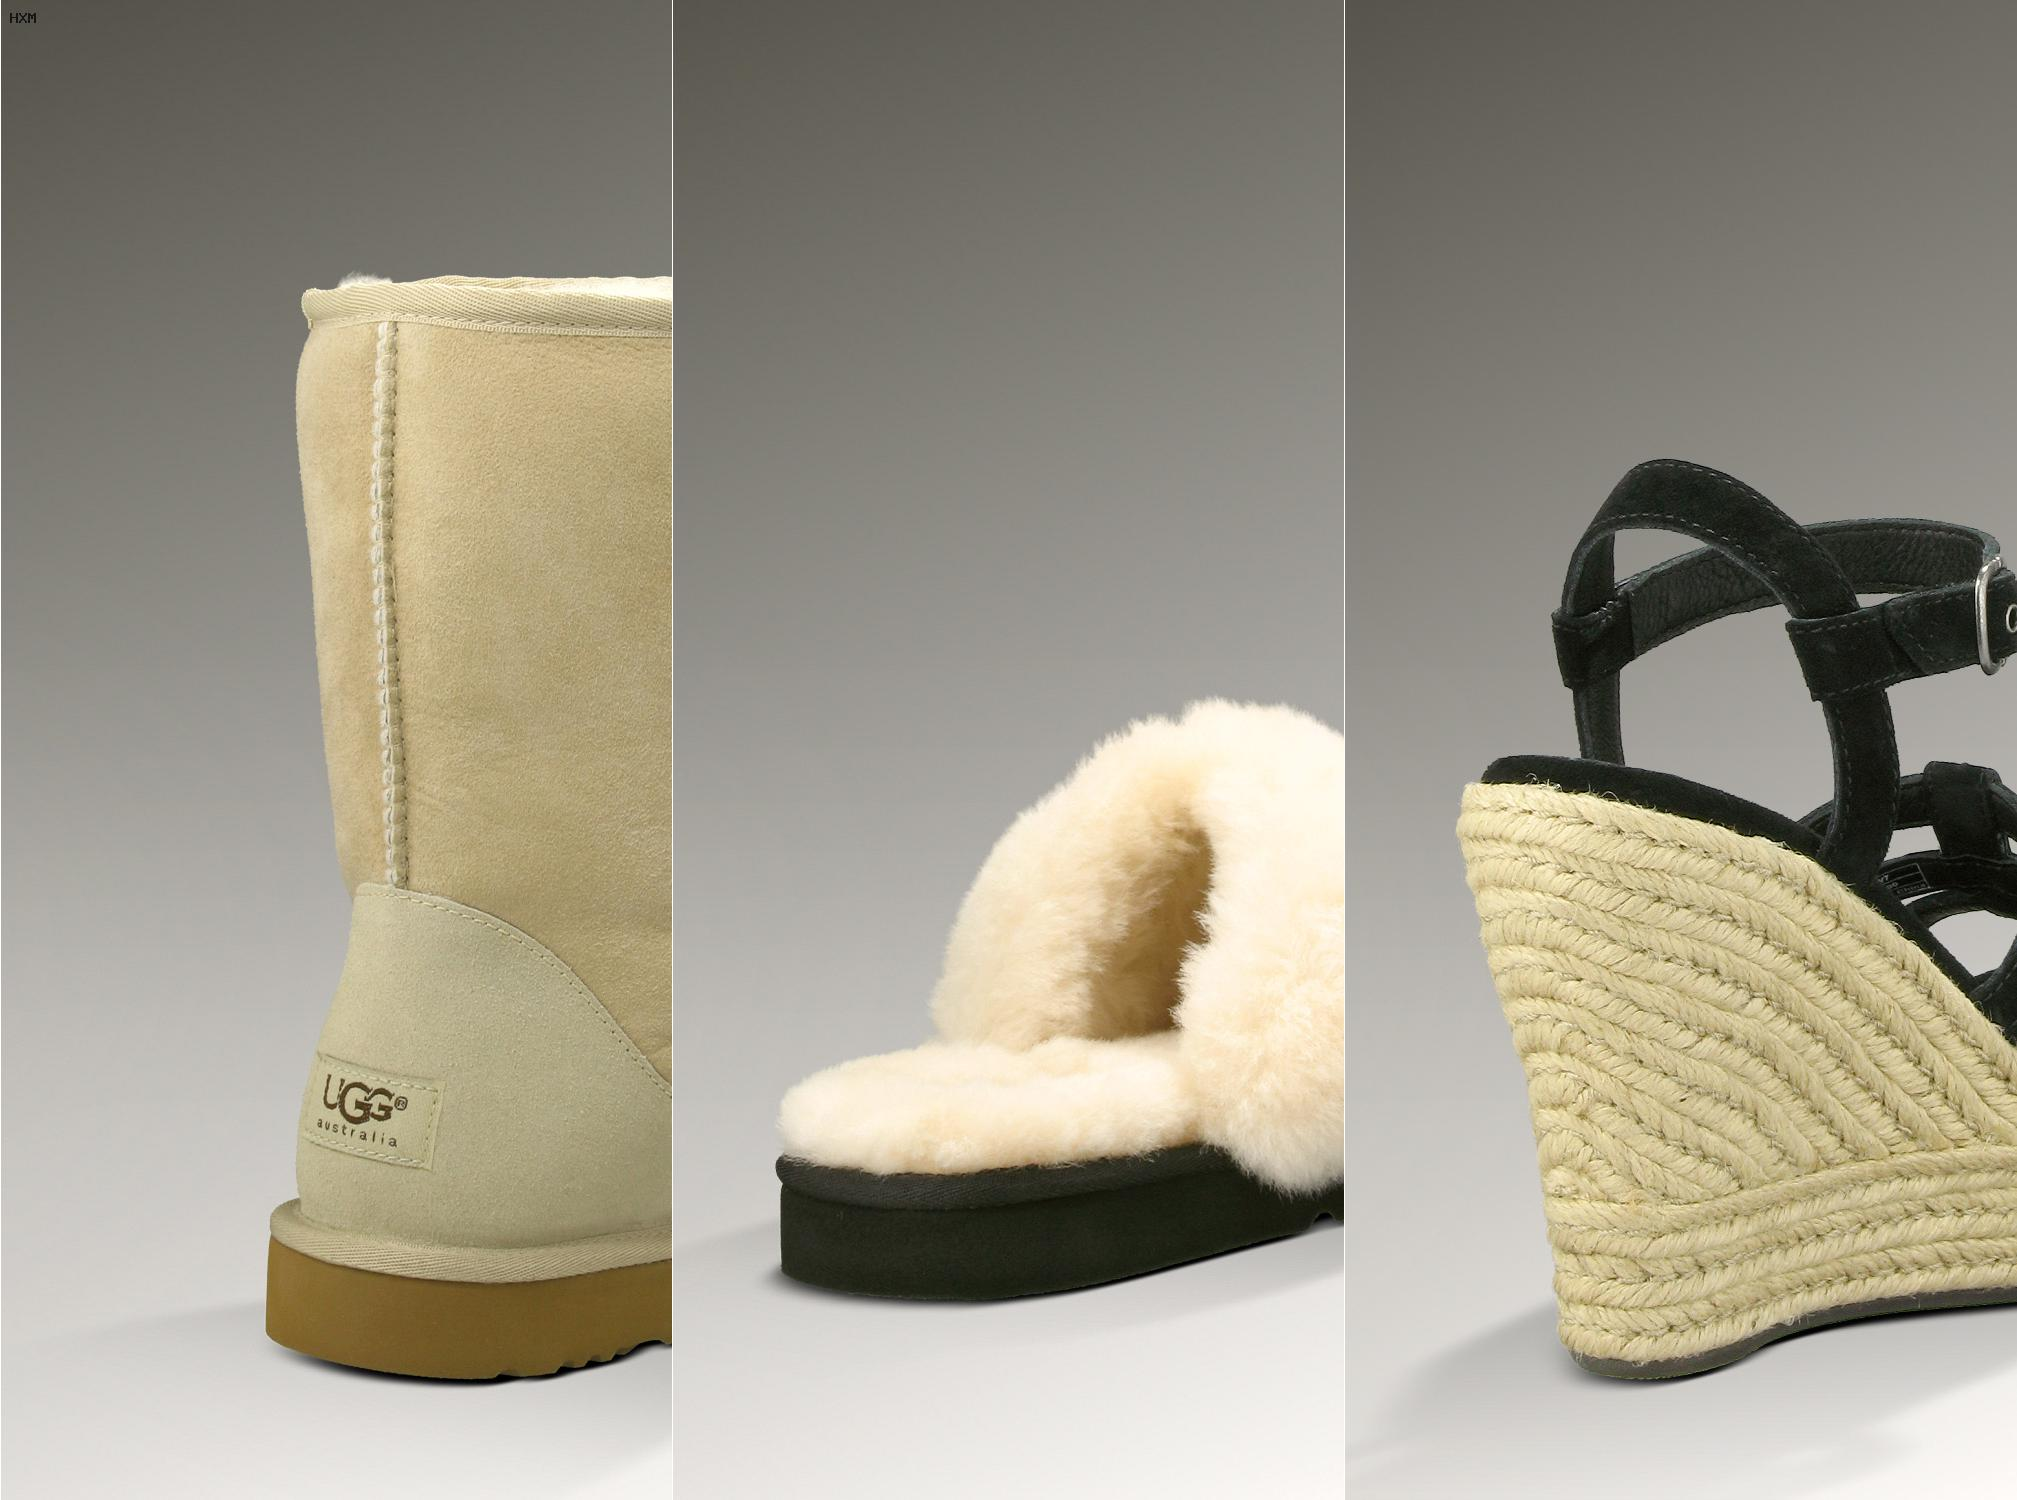 noira ugg boots house of fraser